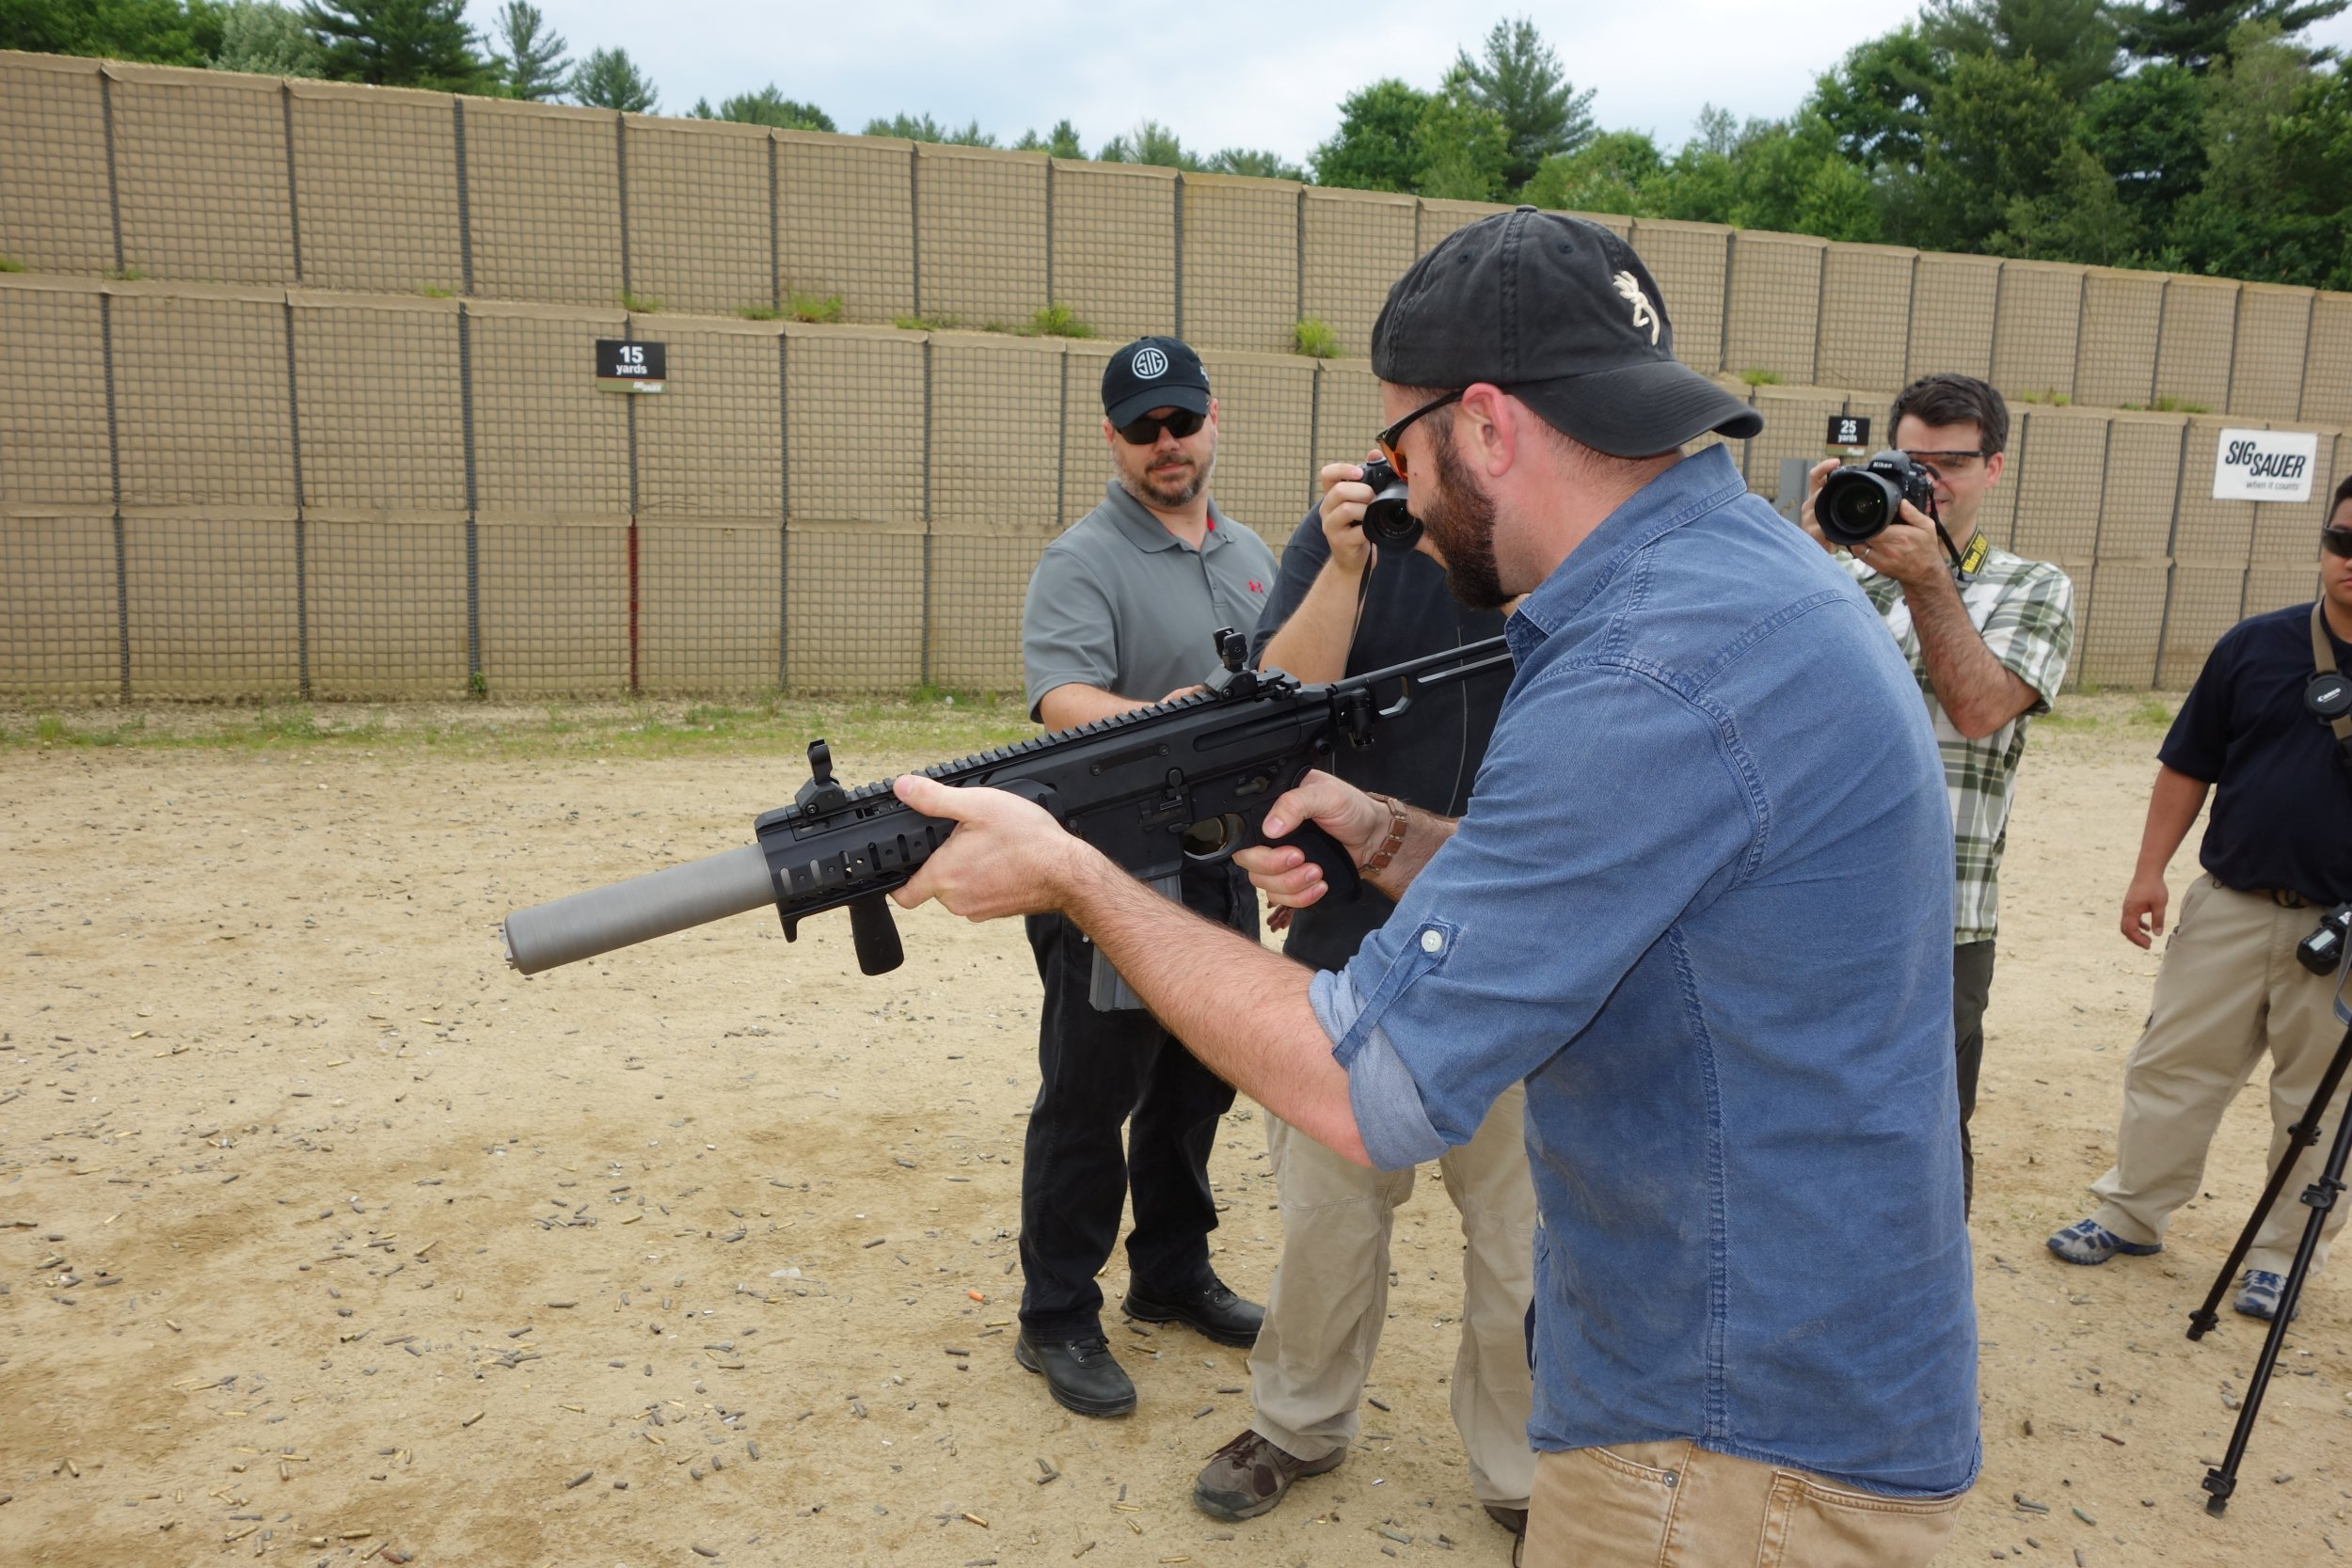 SIG SAUER SIG MCX Multi Caliber AR Assault Rifle Carbine SBR 300 Blackout 300BLK Suppressed SIG SAUER Academy New Media Writers Event 2014 David Crane DefenseReview.com DR 1 SIG MCX LVAW (Low Visibility Assault Weapon) Black Mamba Suppressed 300 Blackout (300BLK) Piston AR Assault SBR/PDW (Short Barreled Rifle/Personal Defense Weapon) Fired on Full Auto and Semi Auto with Subsonic and Supersonic Ammo During SIG SAUER New Media Writers Event (Video!)